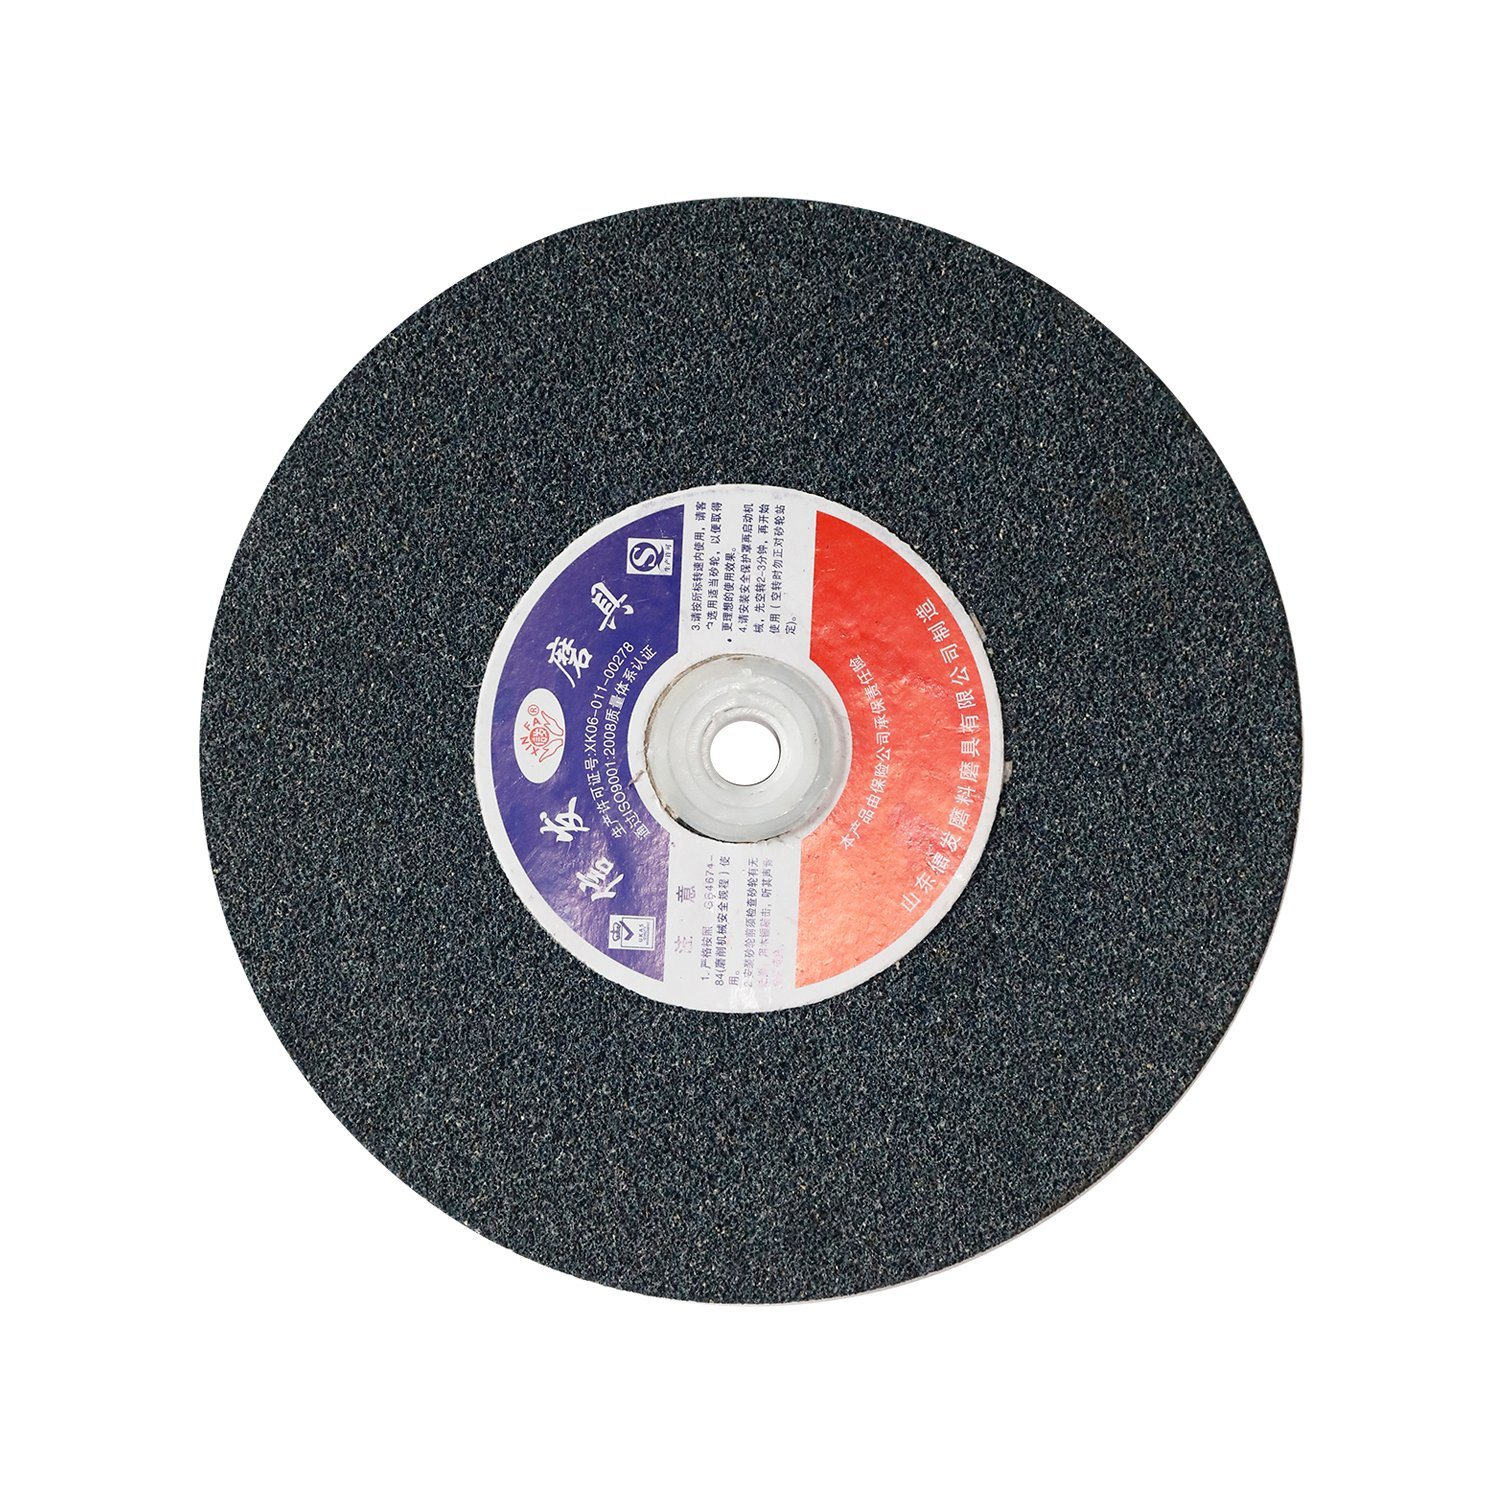 12 Units Non-Woven Finishing Disc 6000 RPM 5 in Disc Dia 5//8-11 in Ctr Hole THD Aluminum Oxide